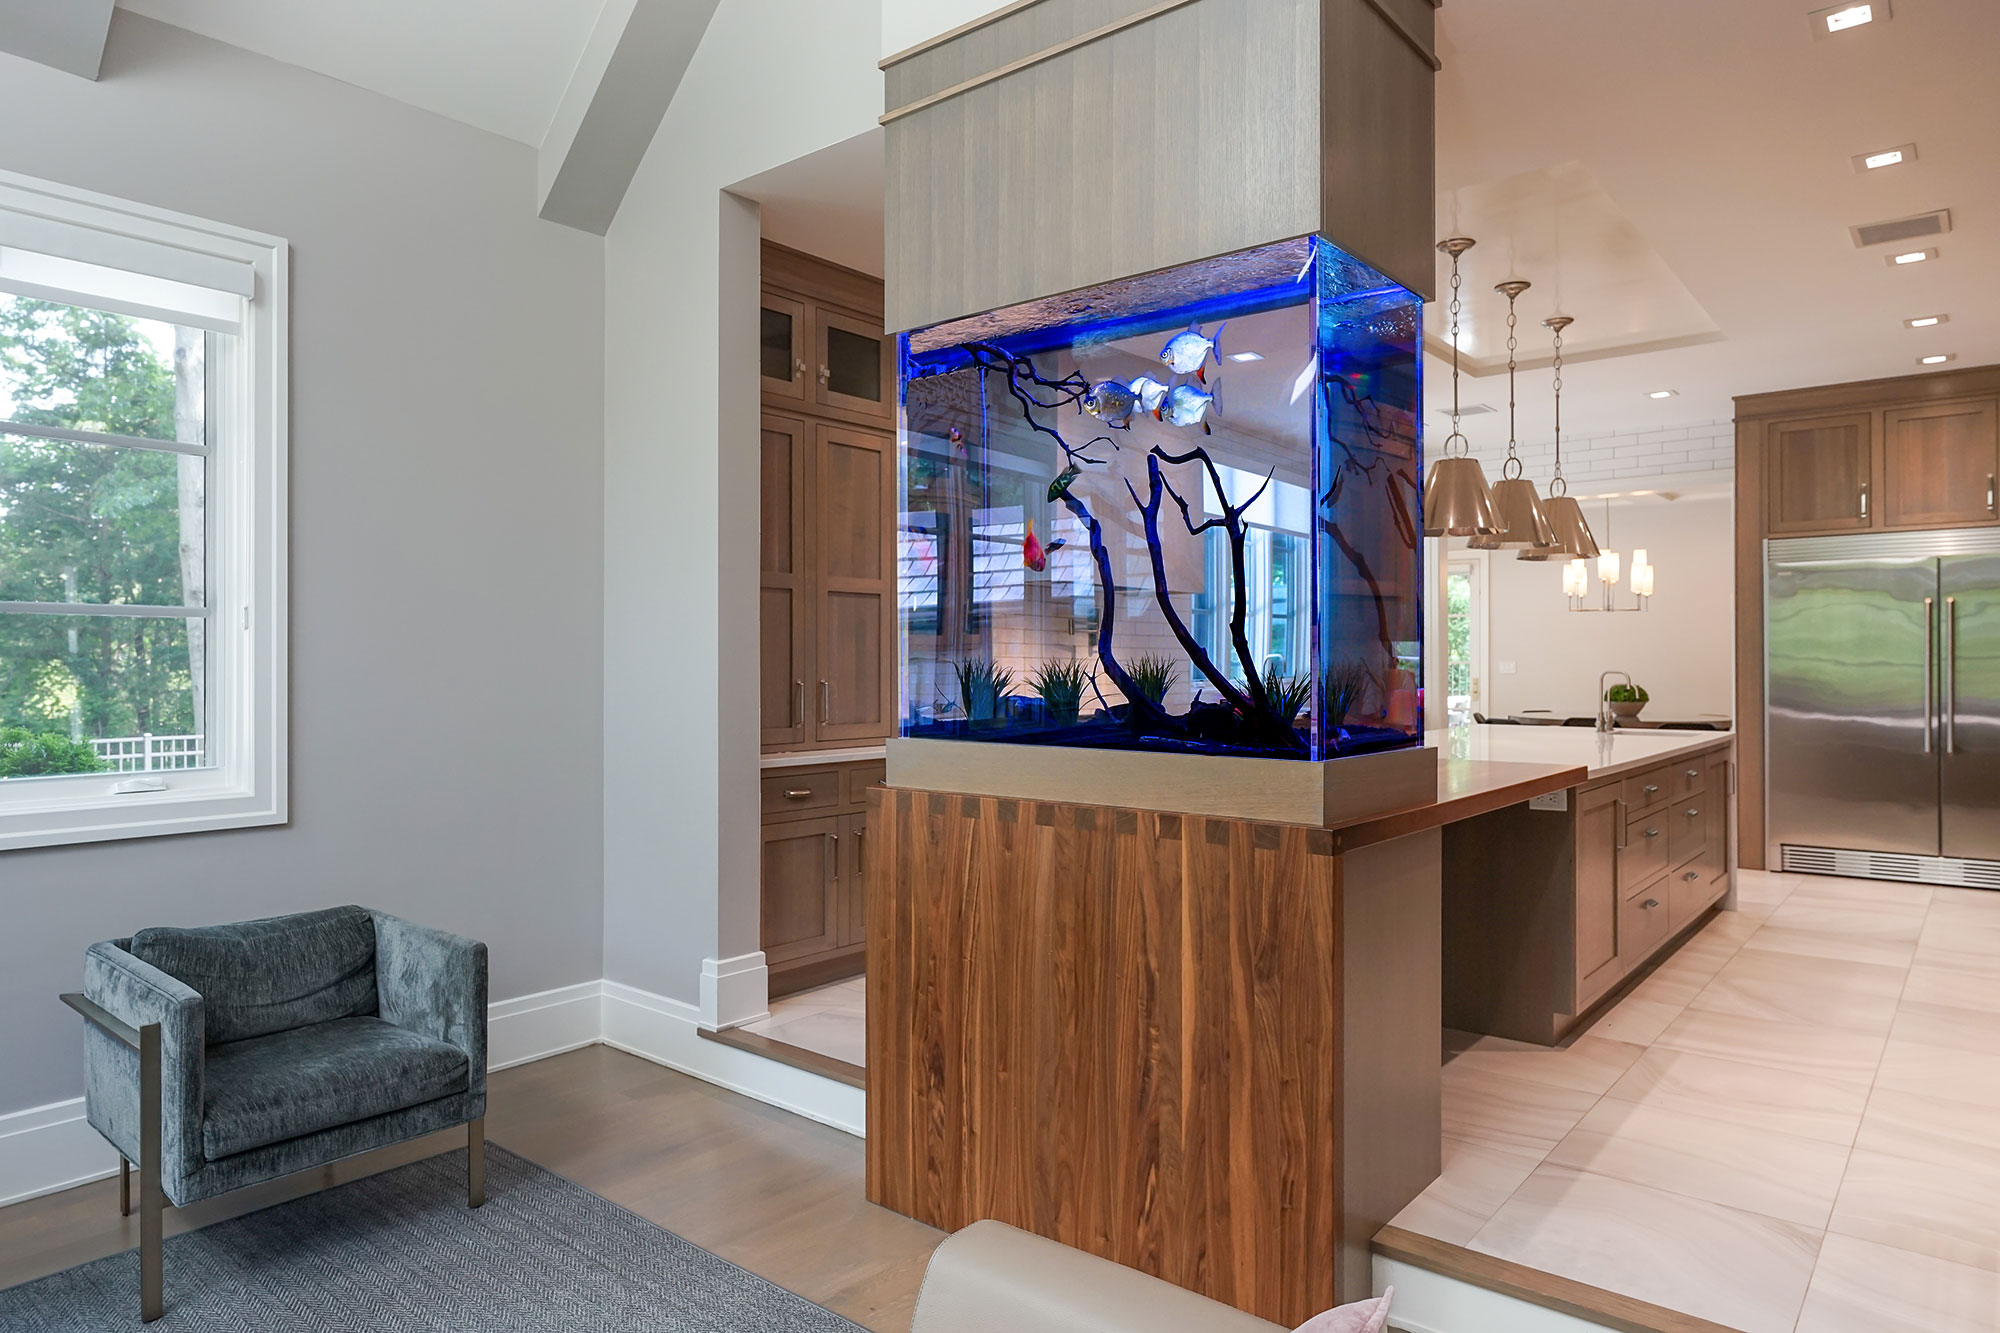 Kitchen island fish tank viewed from living room